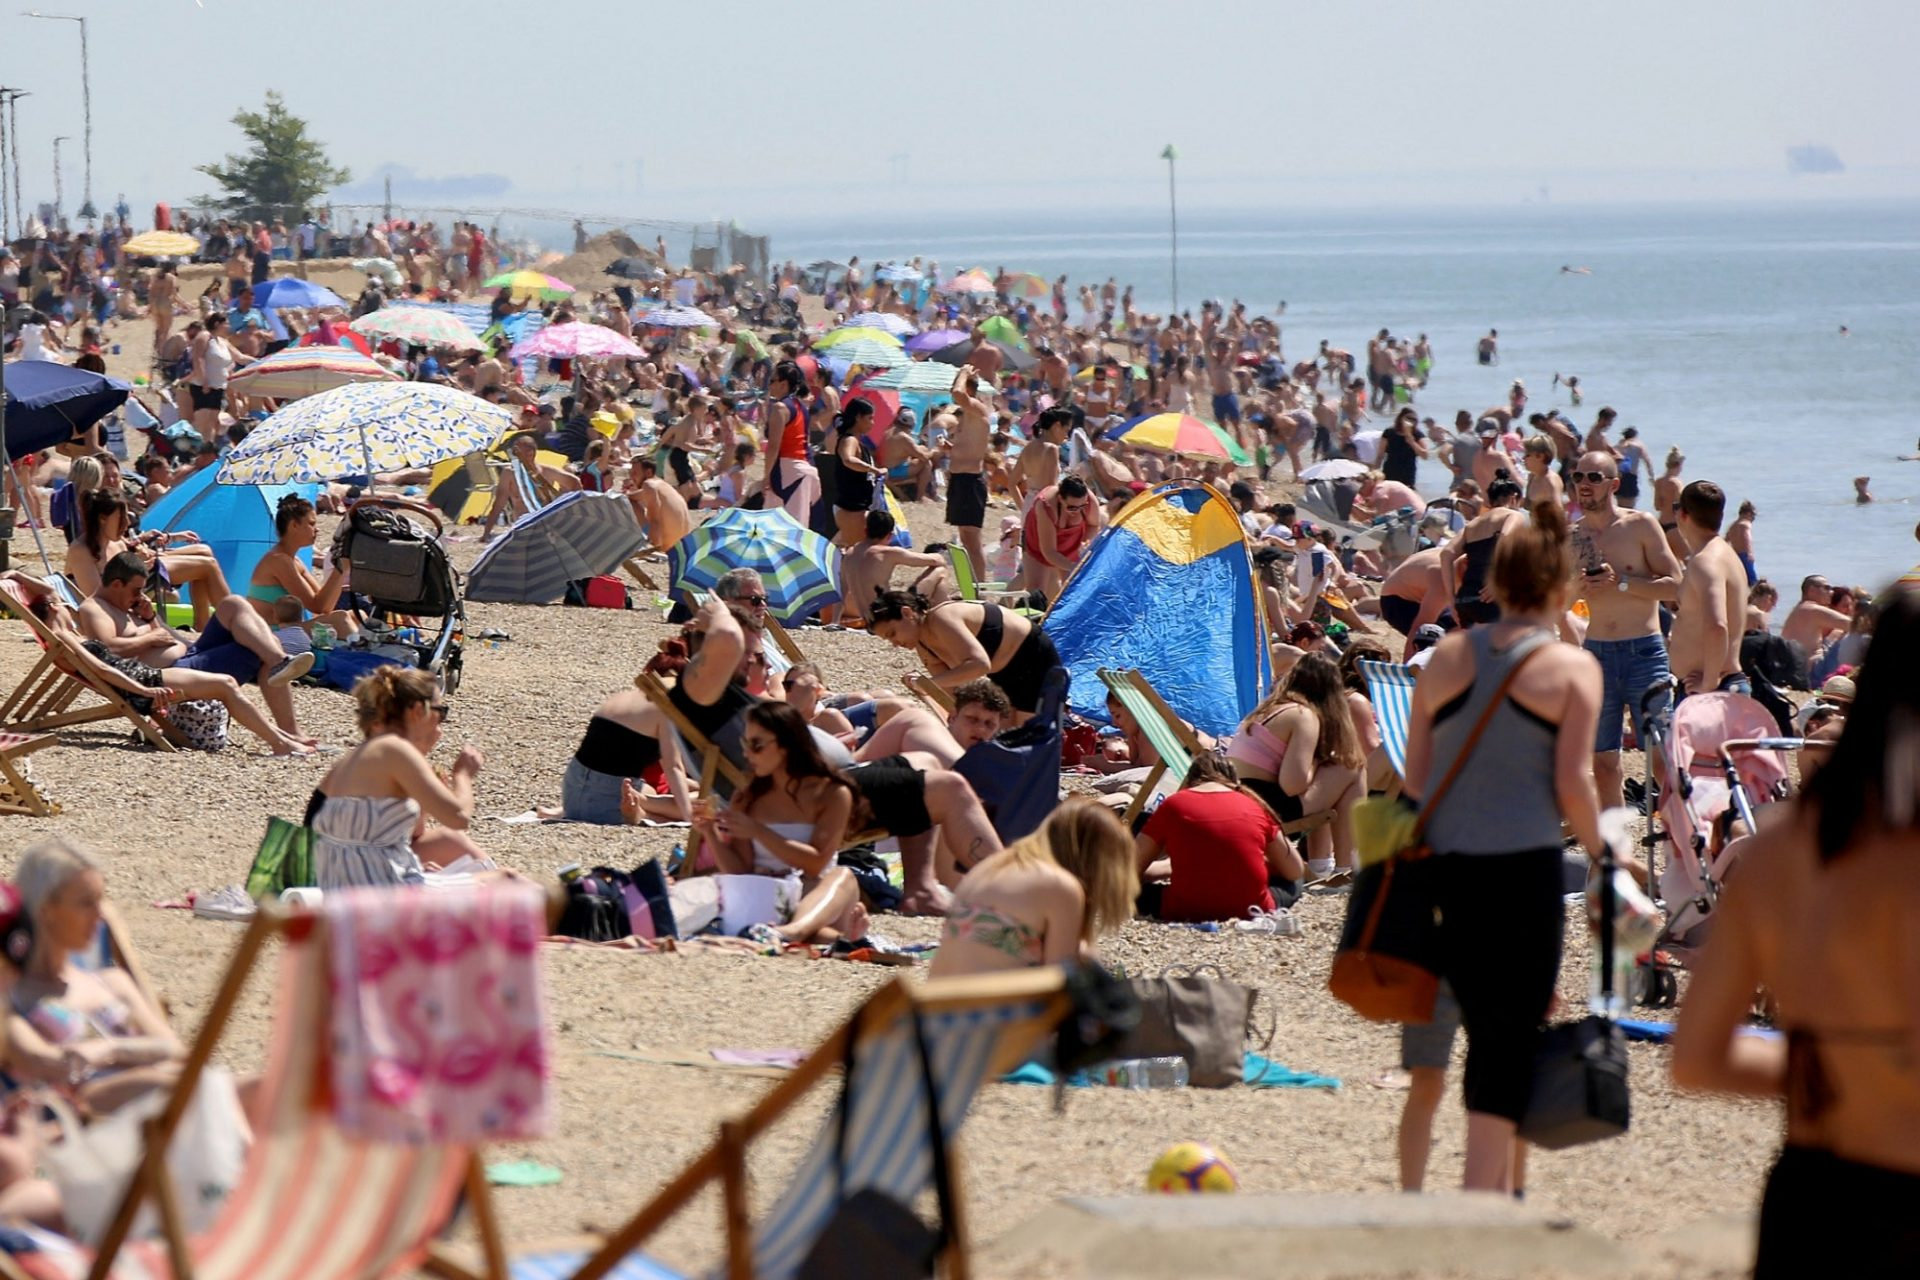 Sunseekers packed Southend beach as the heatwave challenged social distancing rules. (Video) 9